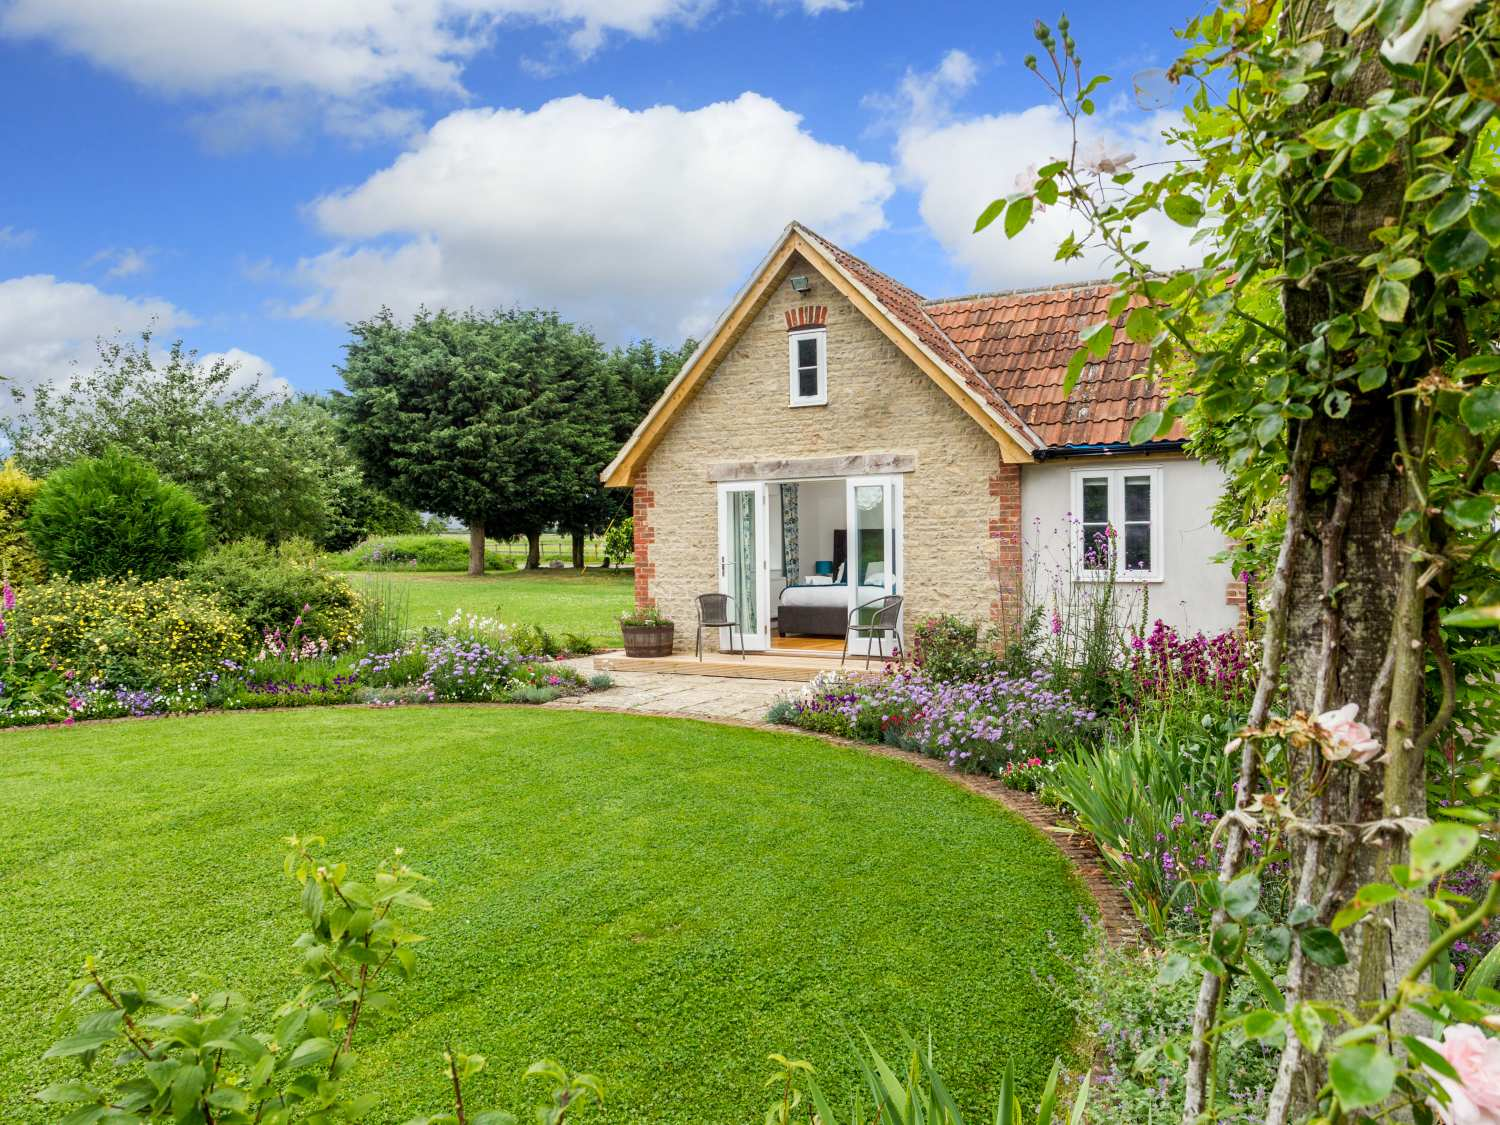 The Farm House Holiday Cottage Upper Seagry4